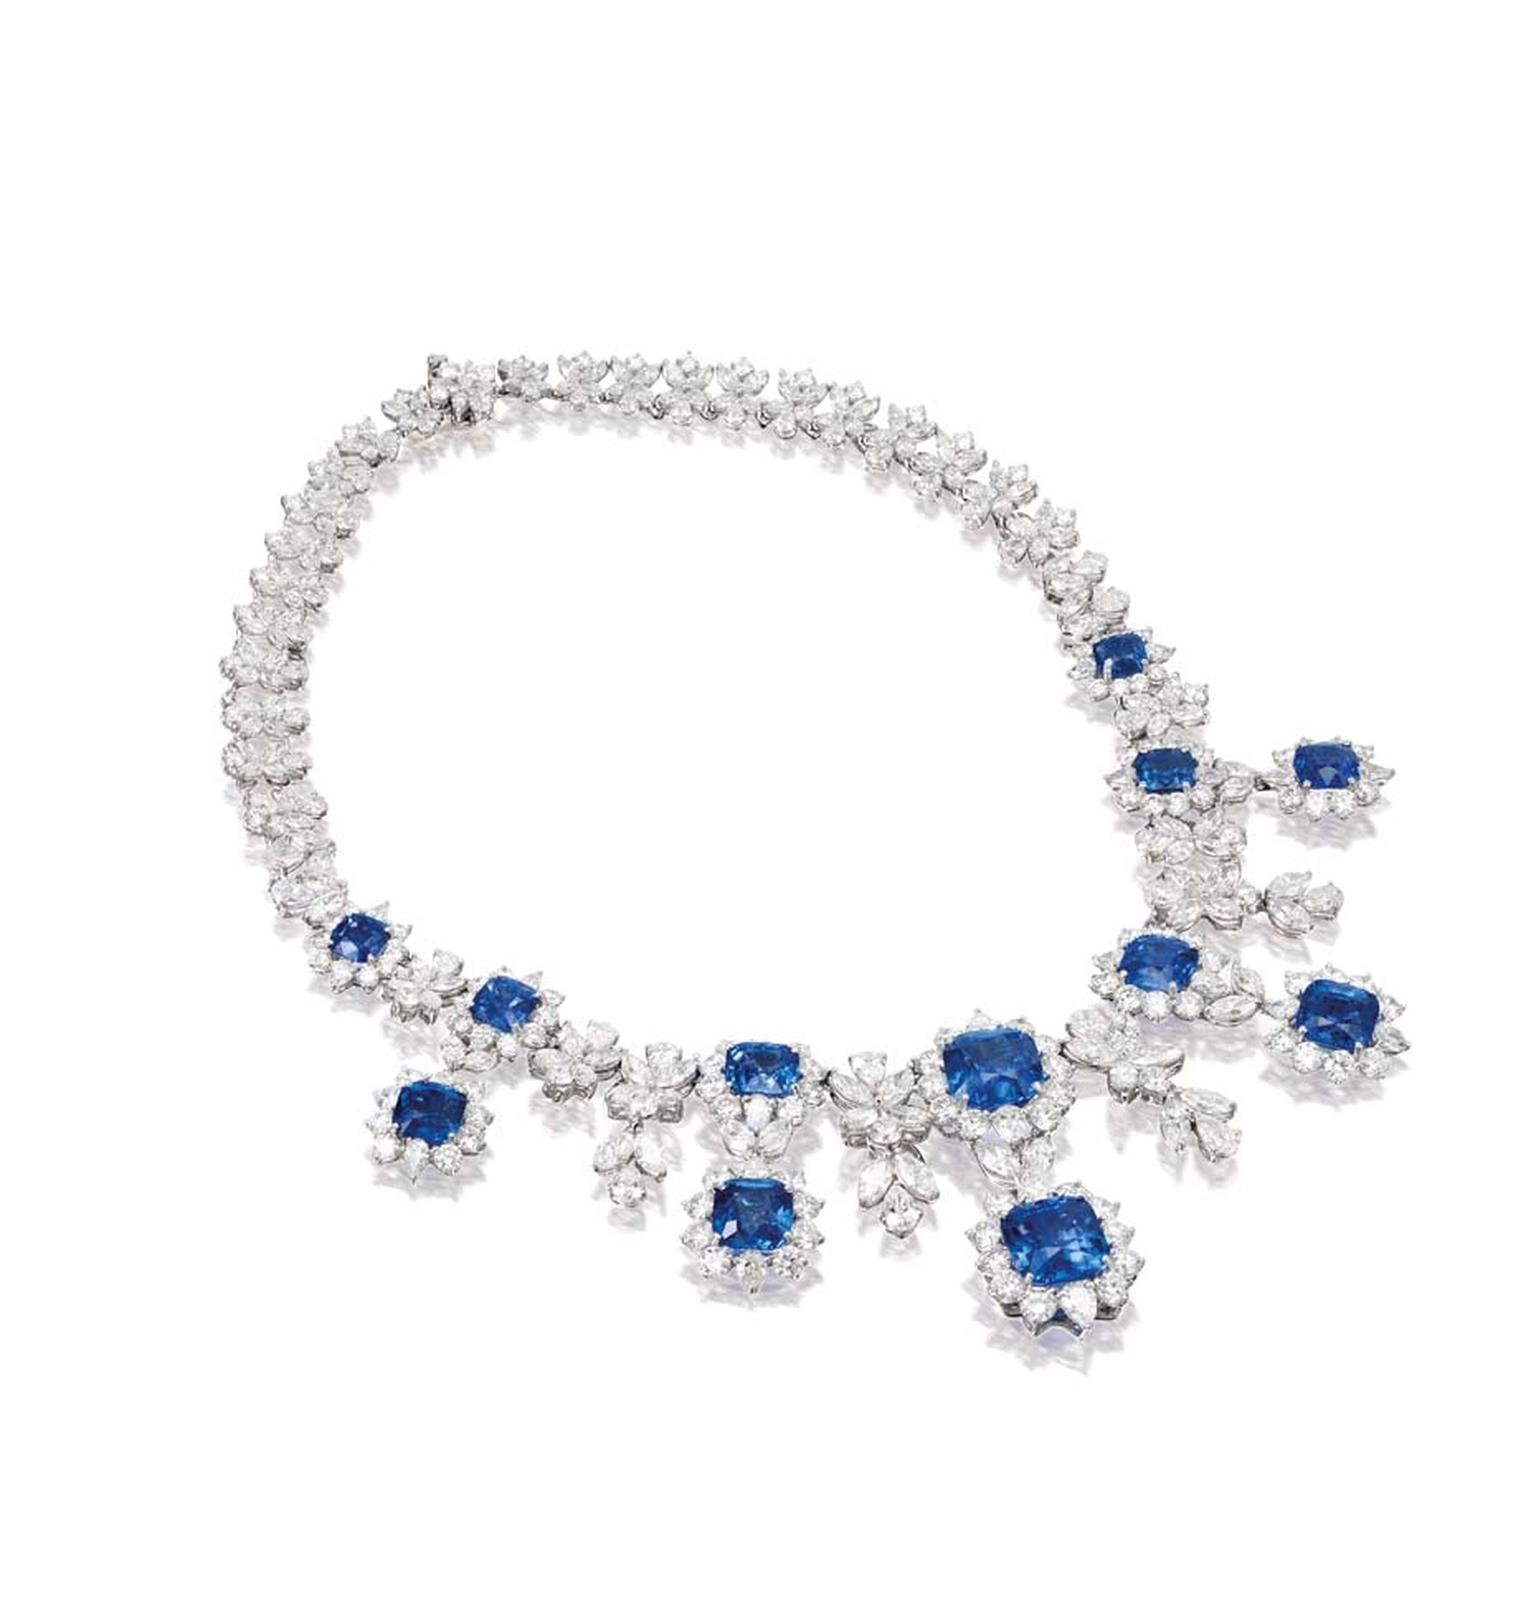 The most valuable jewels in the line-up are a sapphire and diamond Marina B necklace with matching earrings. Sold as a set, the Amelia suite's estimated £305,000-390,000 price tag reflects the fact that the necklace alone features more than 100 carats of